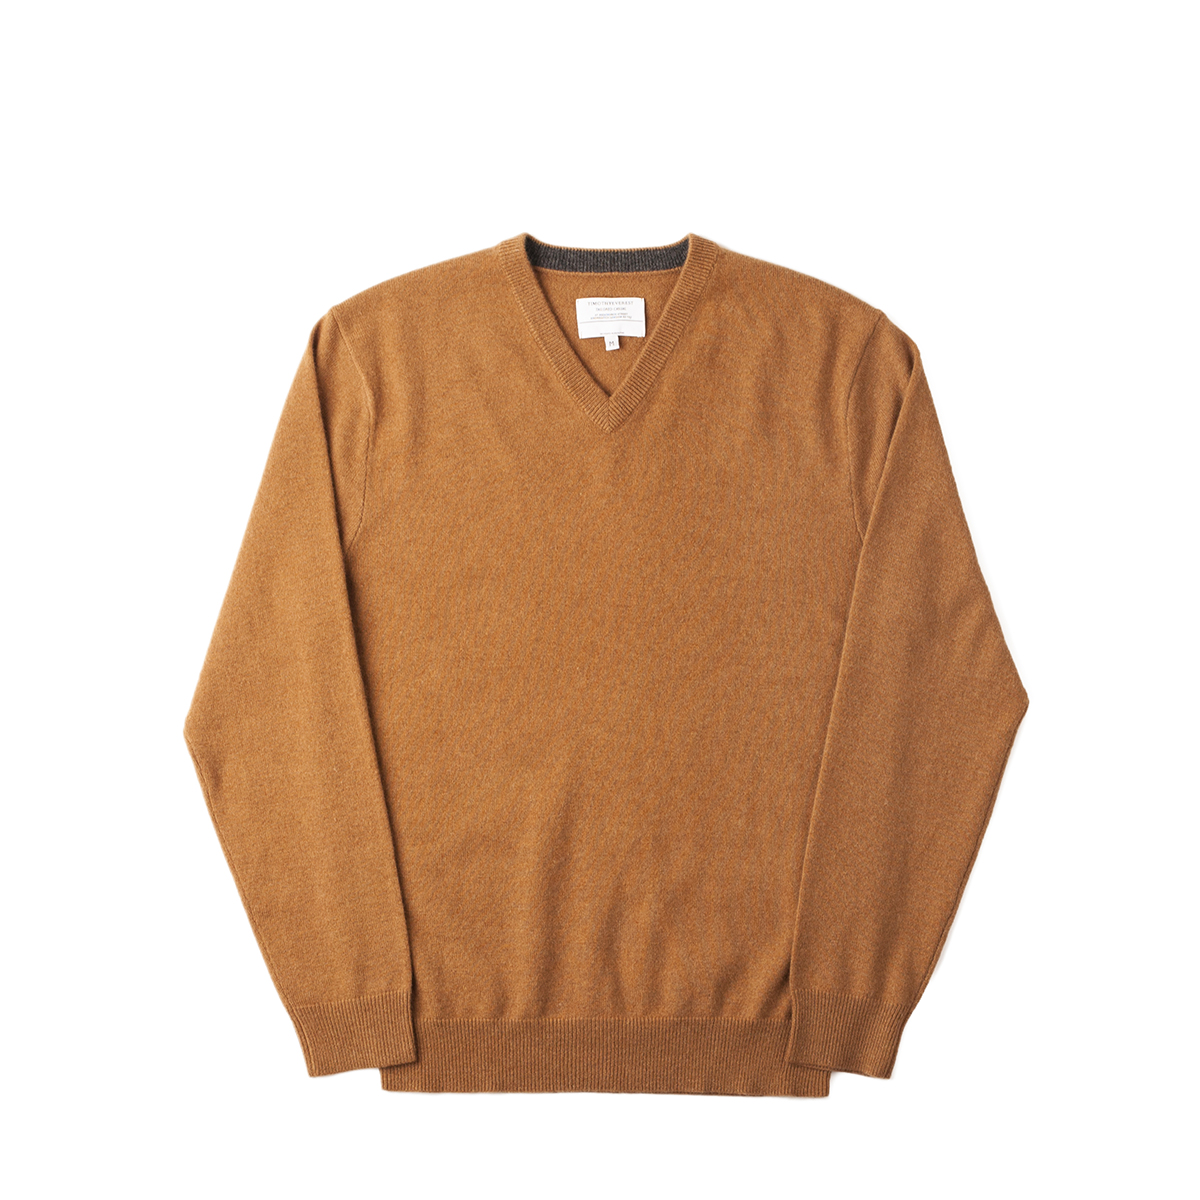 Timothy Everest Camel Cashmere V-Neck